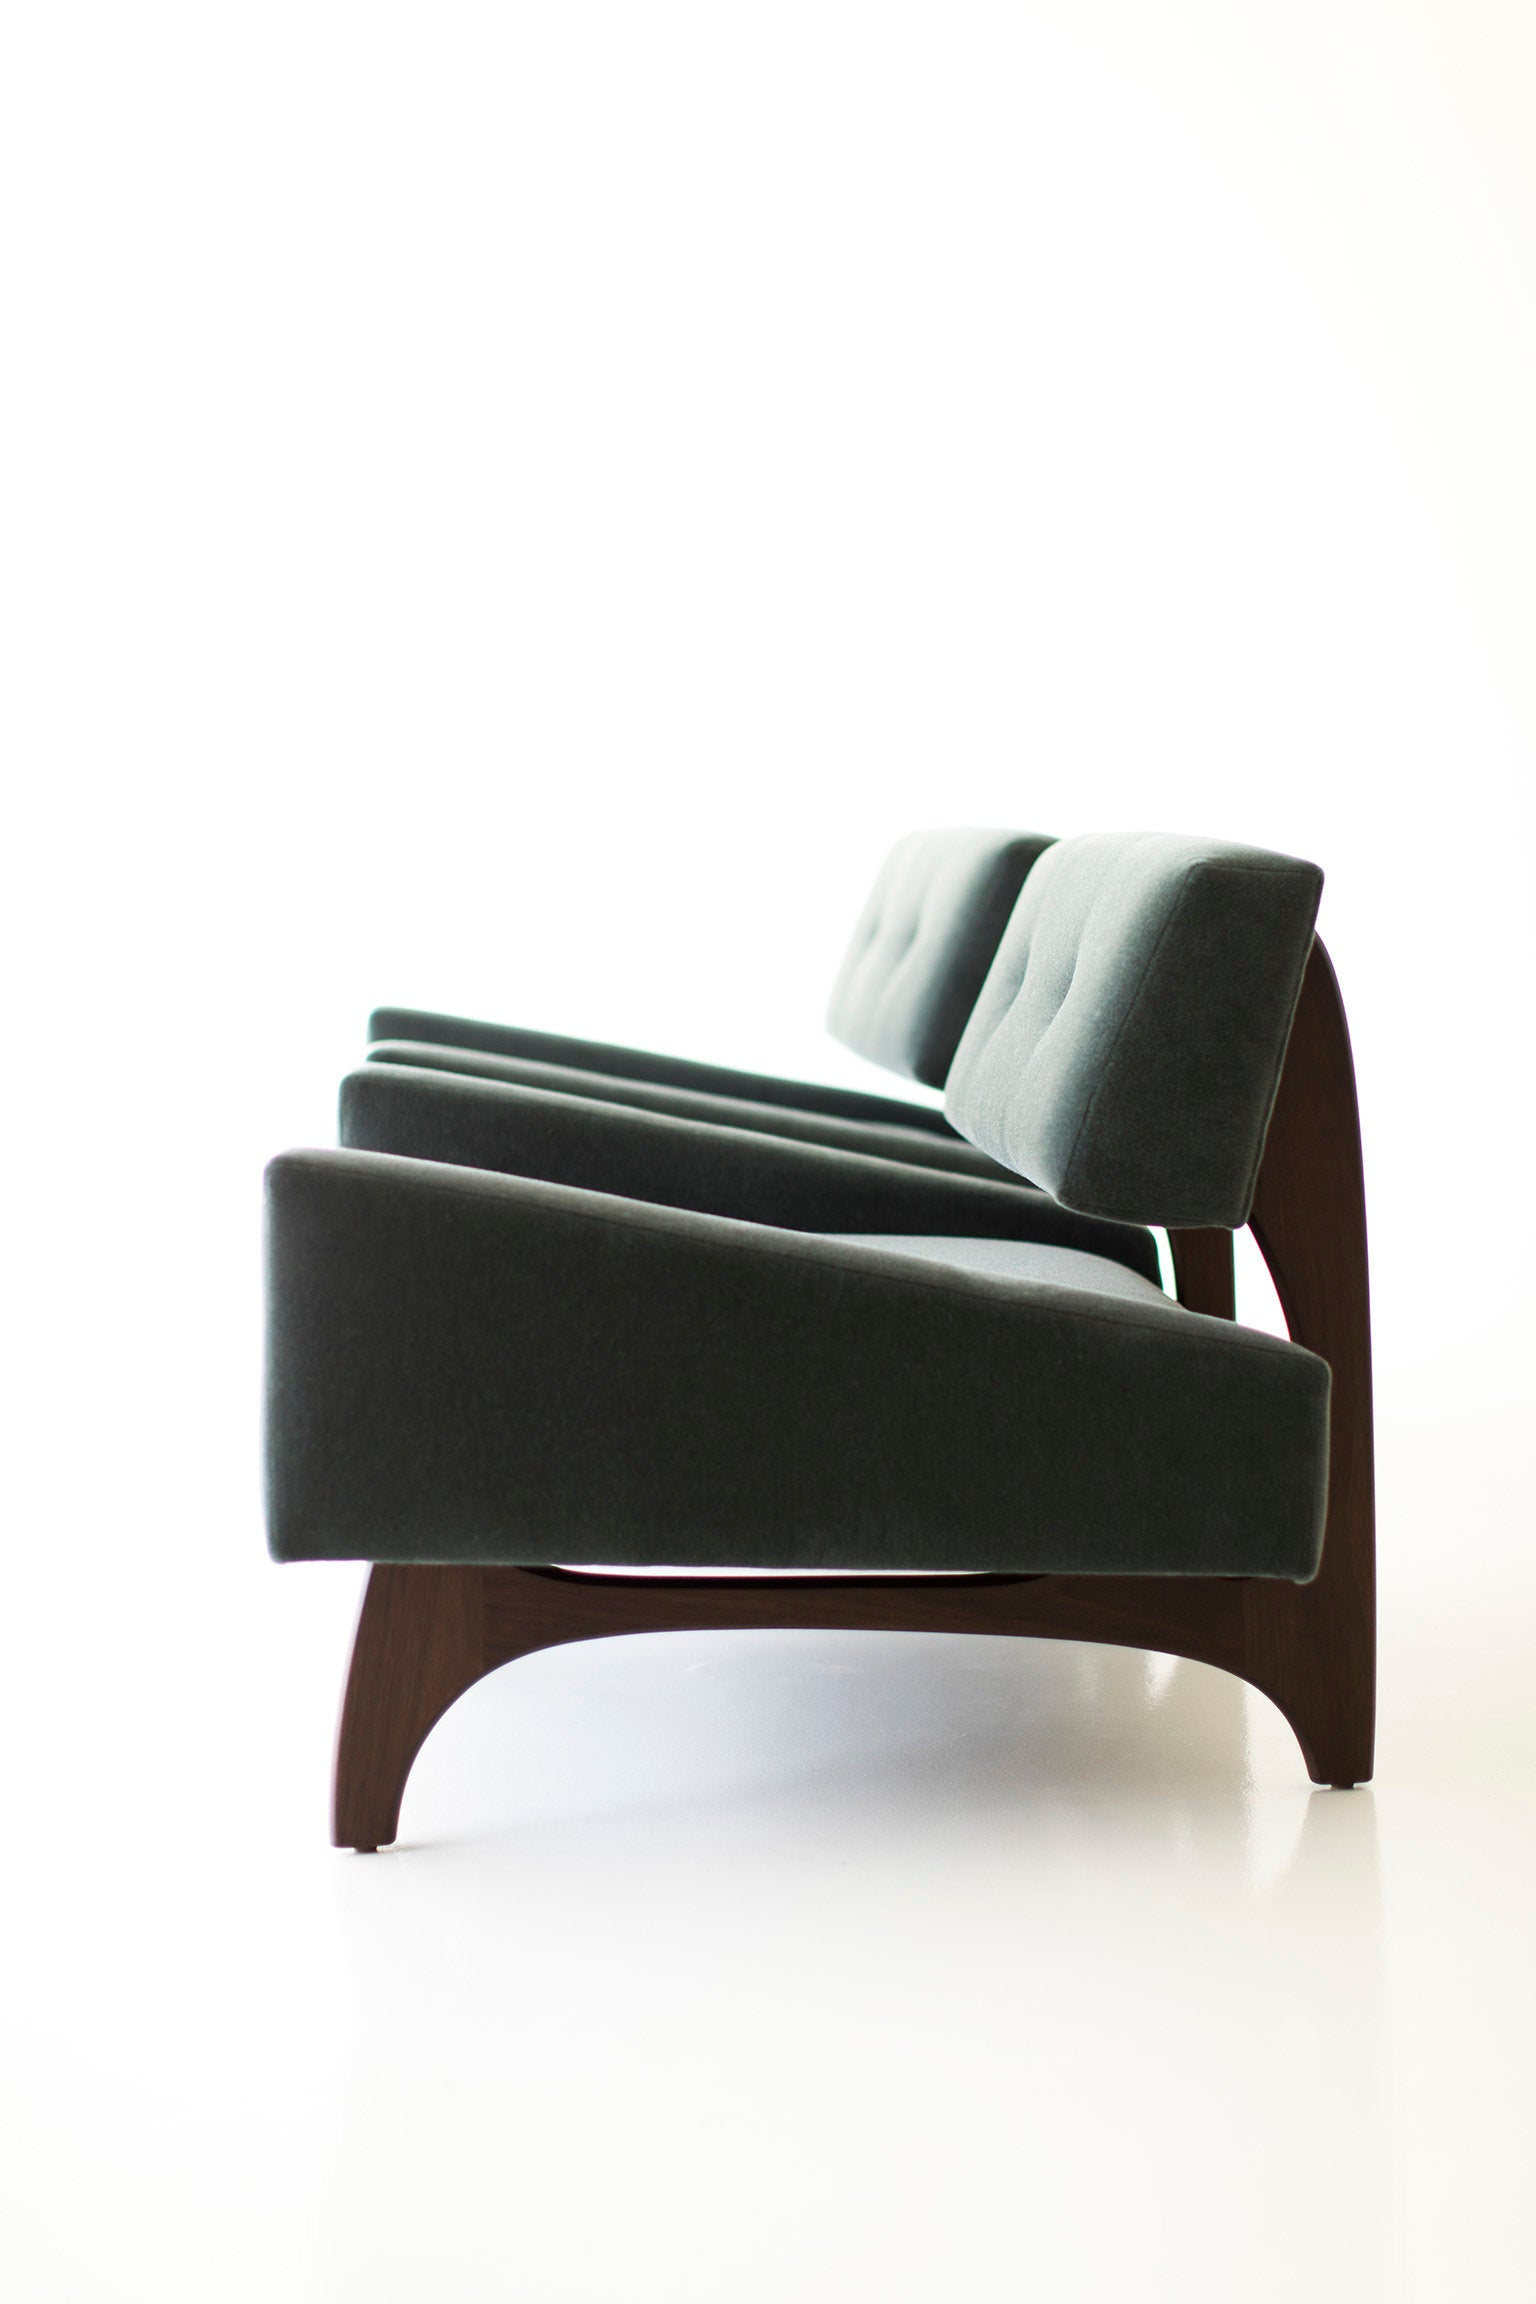 craft-associates-lounge-chairs-1519-01